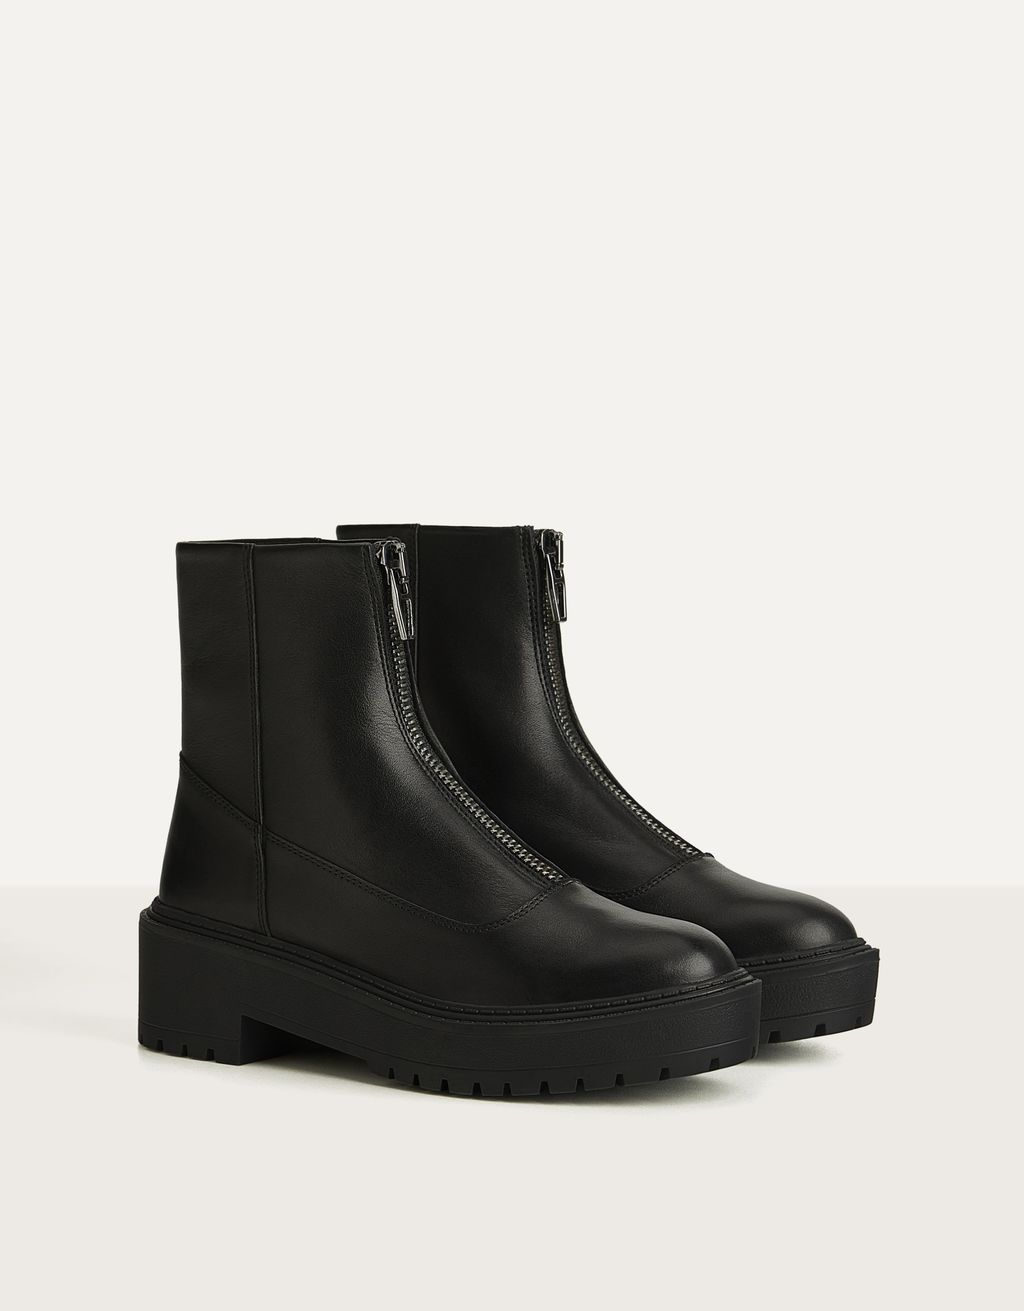 LEATHER ankle boots with zips